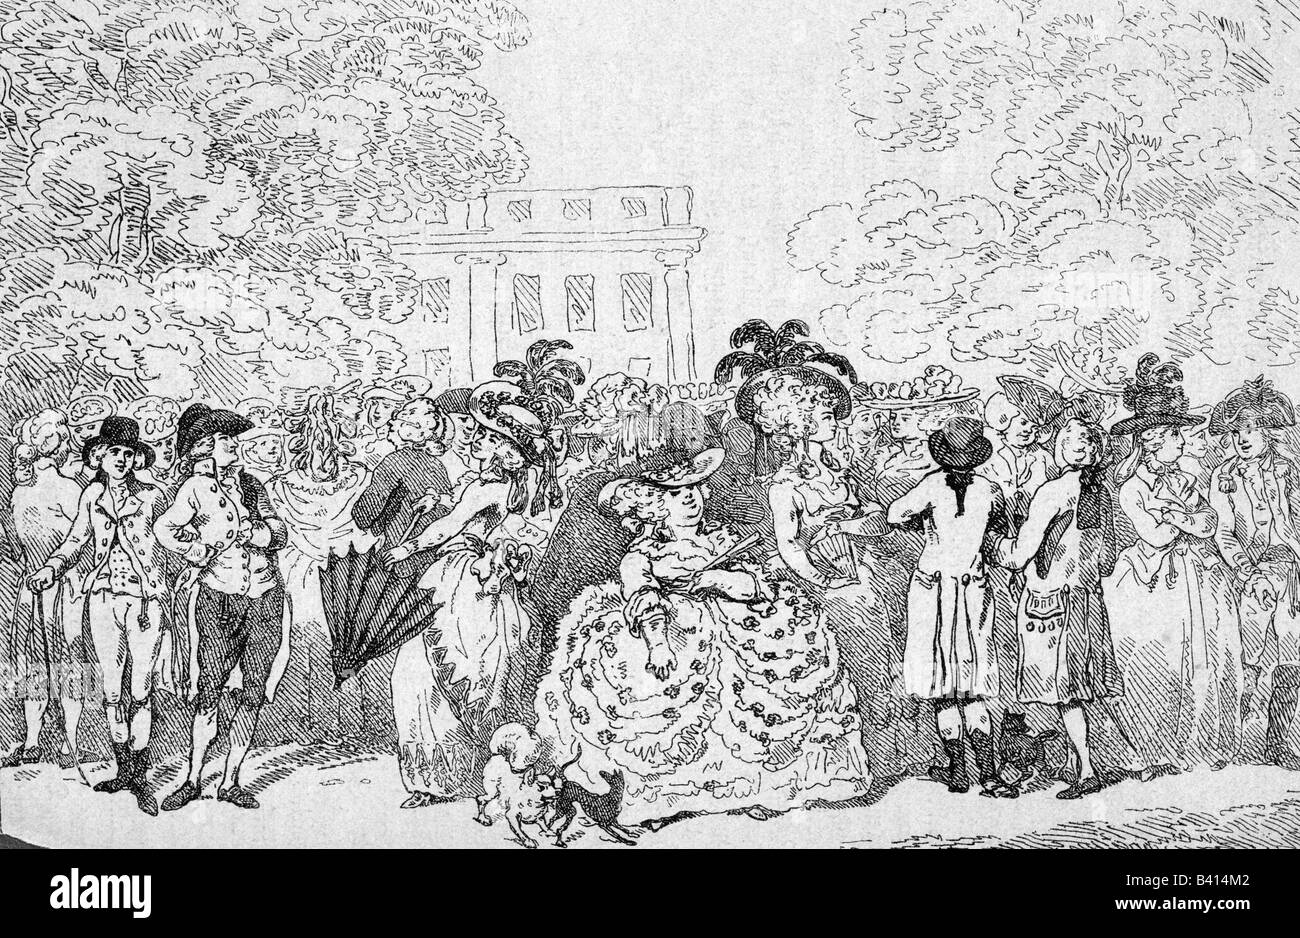 fashion th century great britain copper engraving stock stock photo fashion 18th century great britain copper engraving 1781 england people men women historic historical